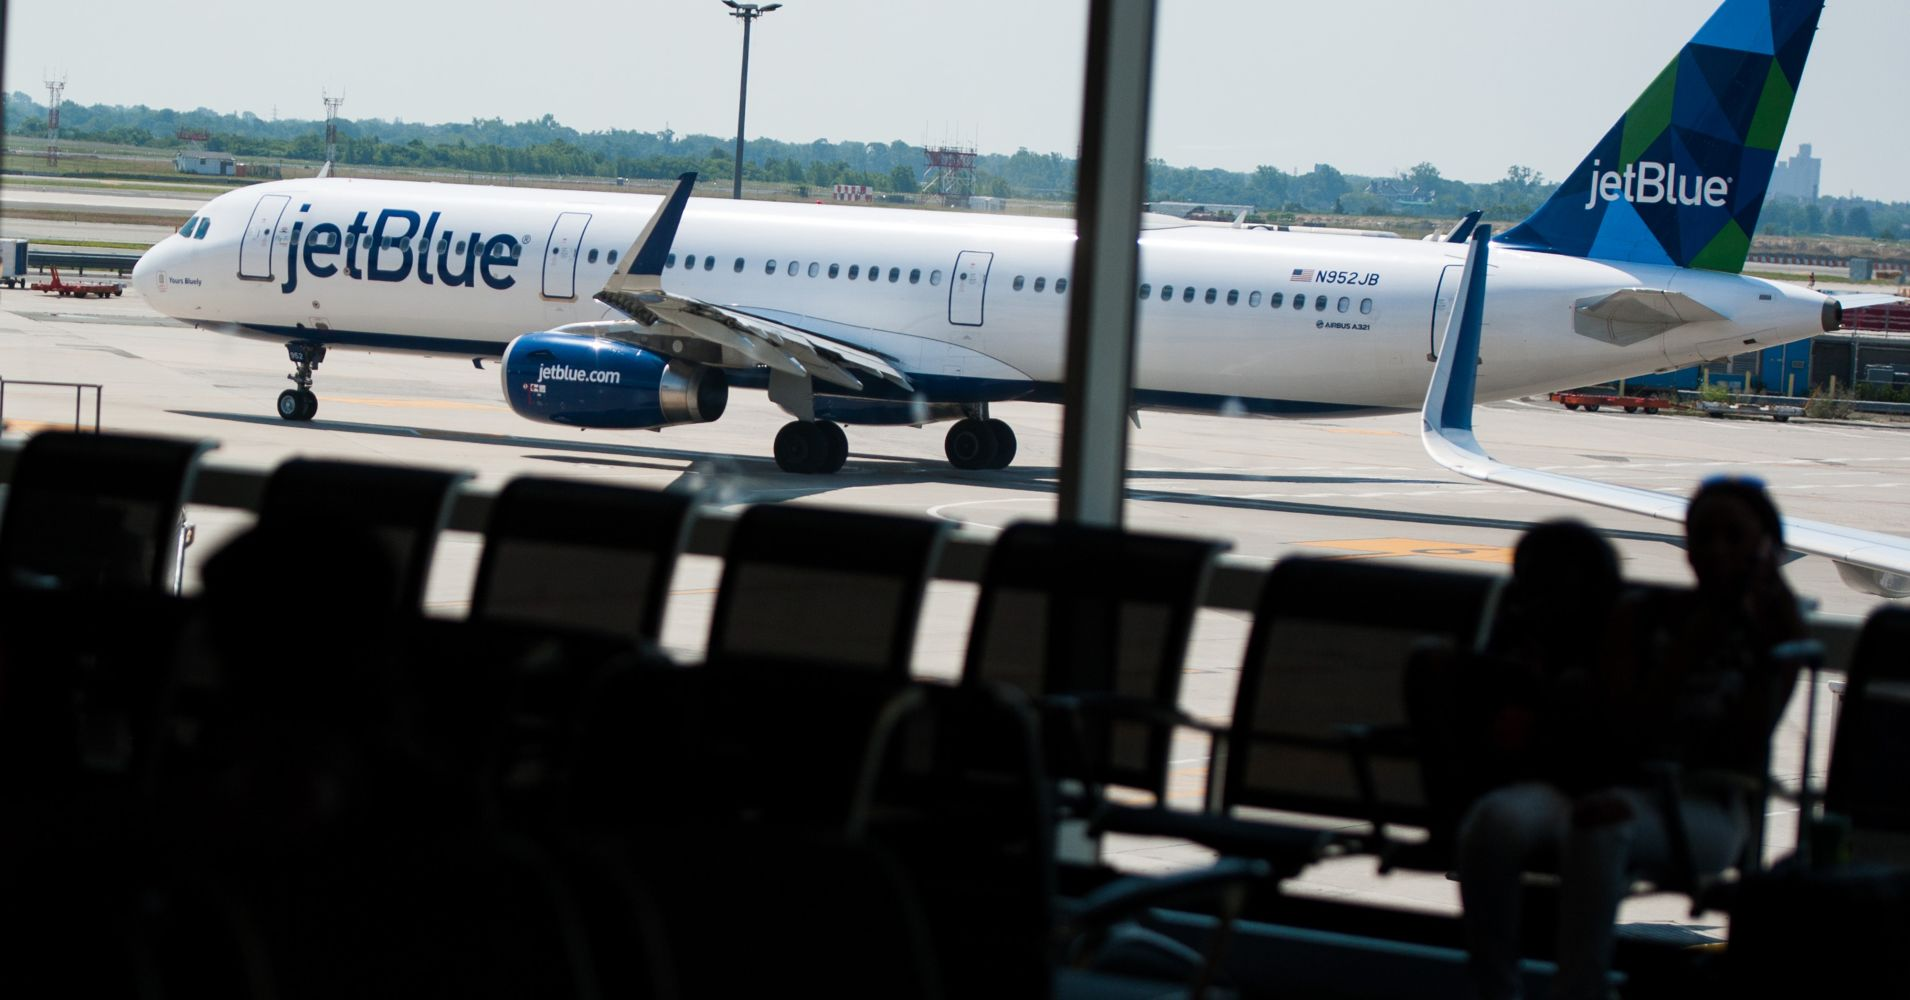 JetBlue plans to take on big rivals with first service to London